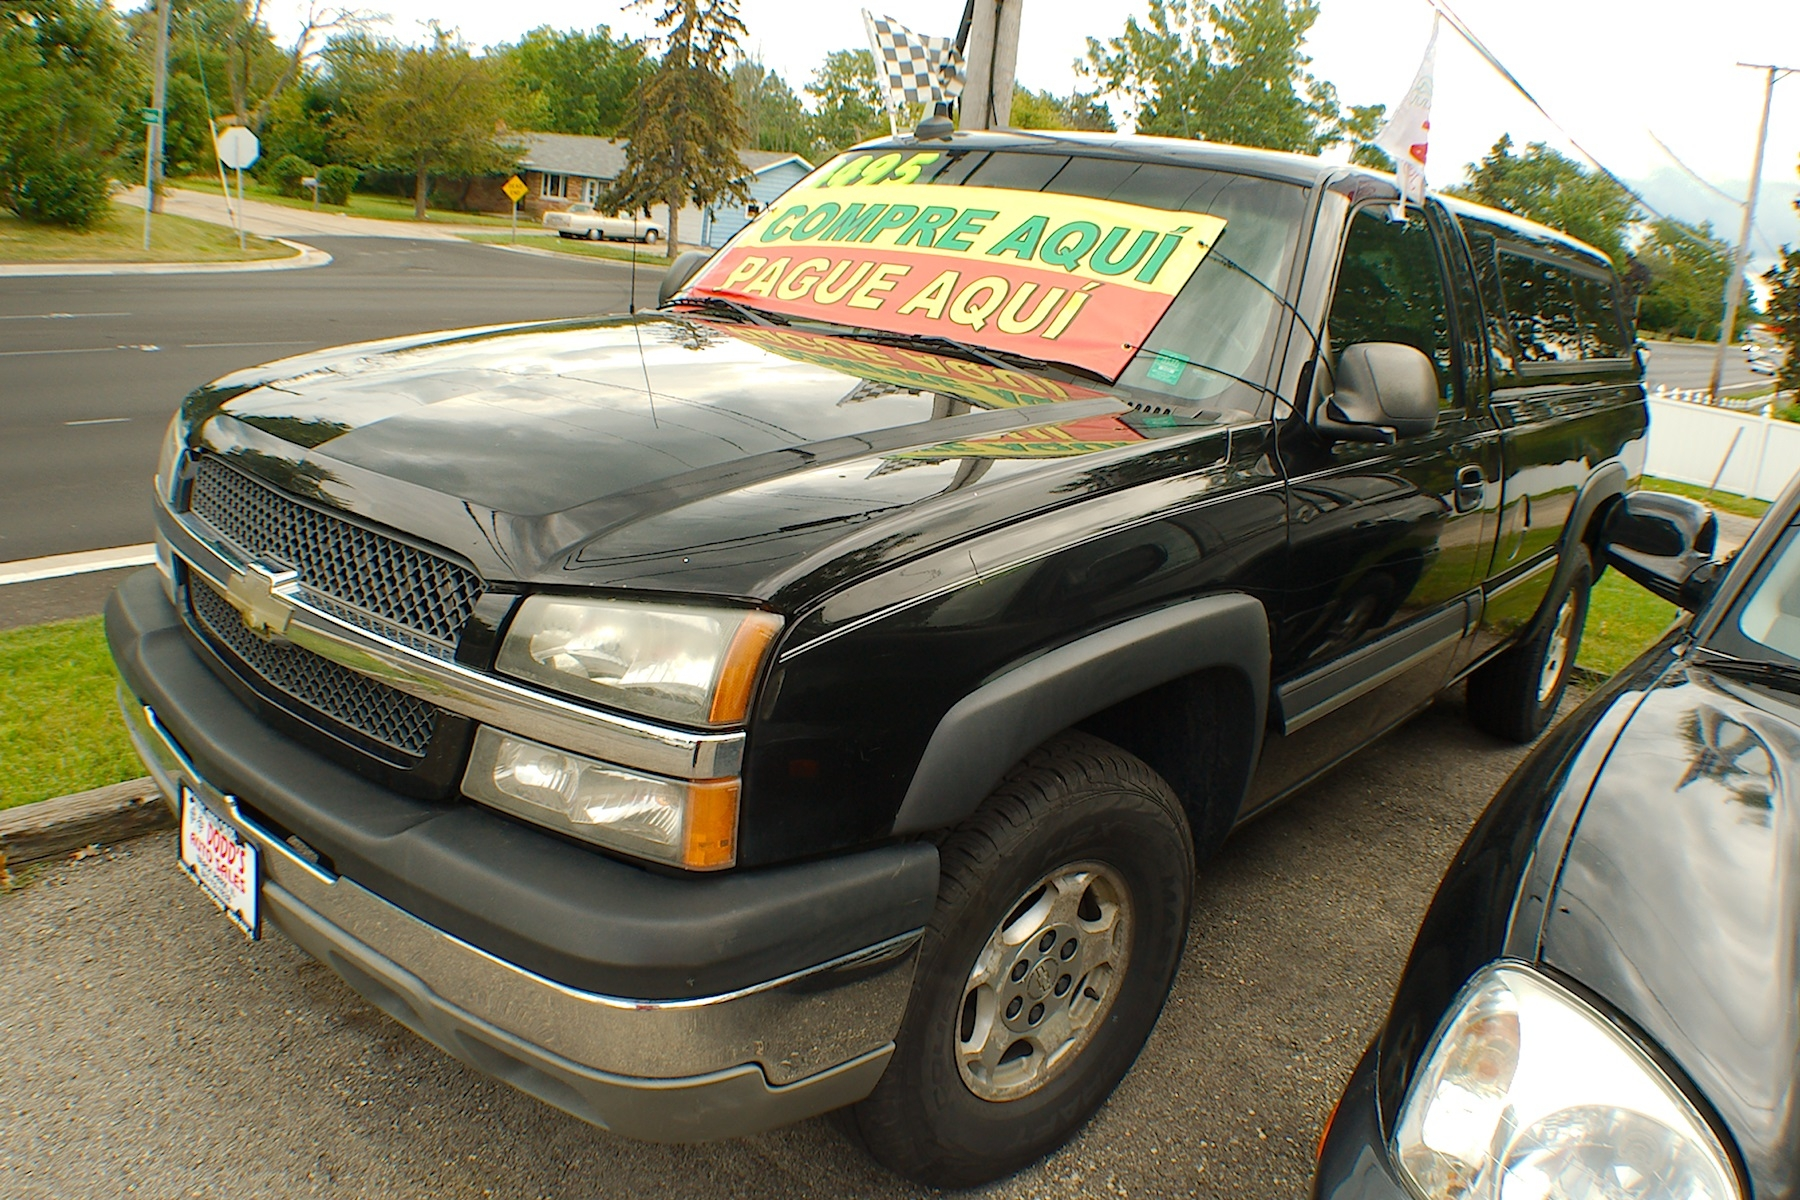 2003 Chevy Silverado LS Black 4x4 Z71 Truck Sale Antioch Zion Waukegan Lake County Illinois